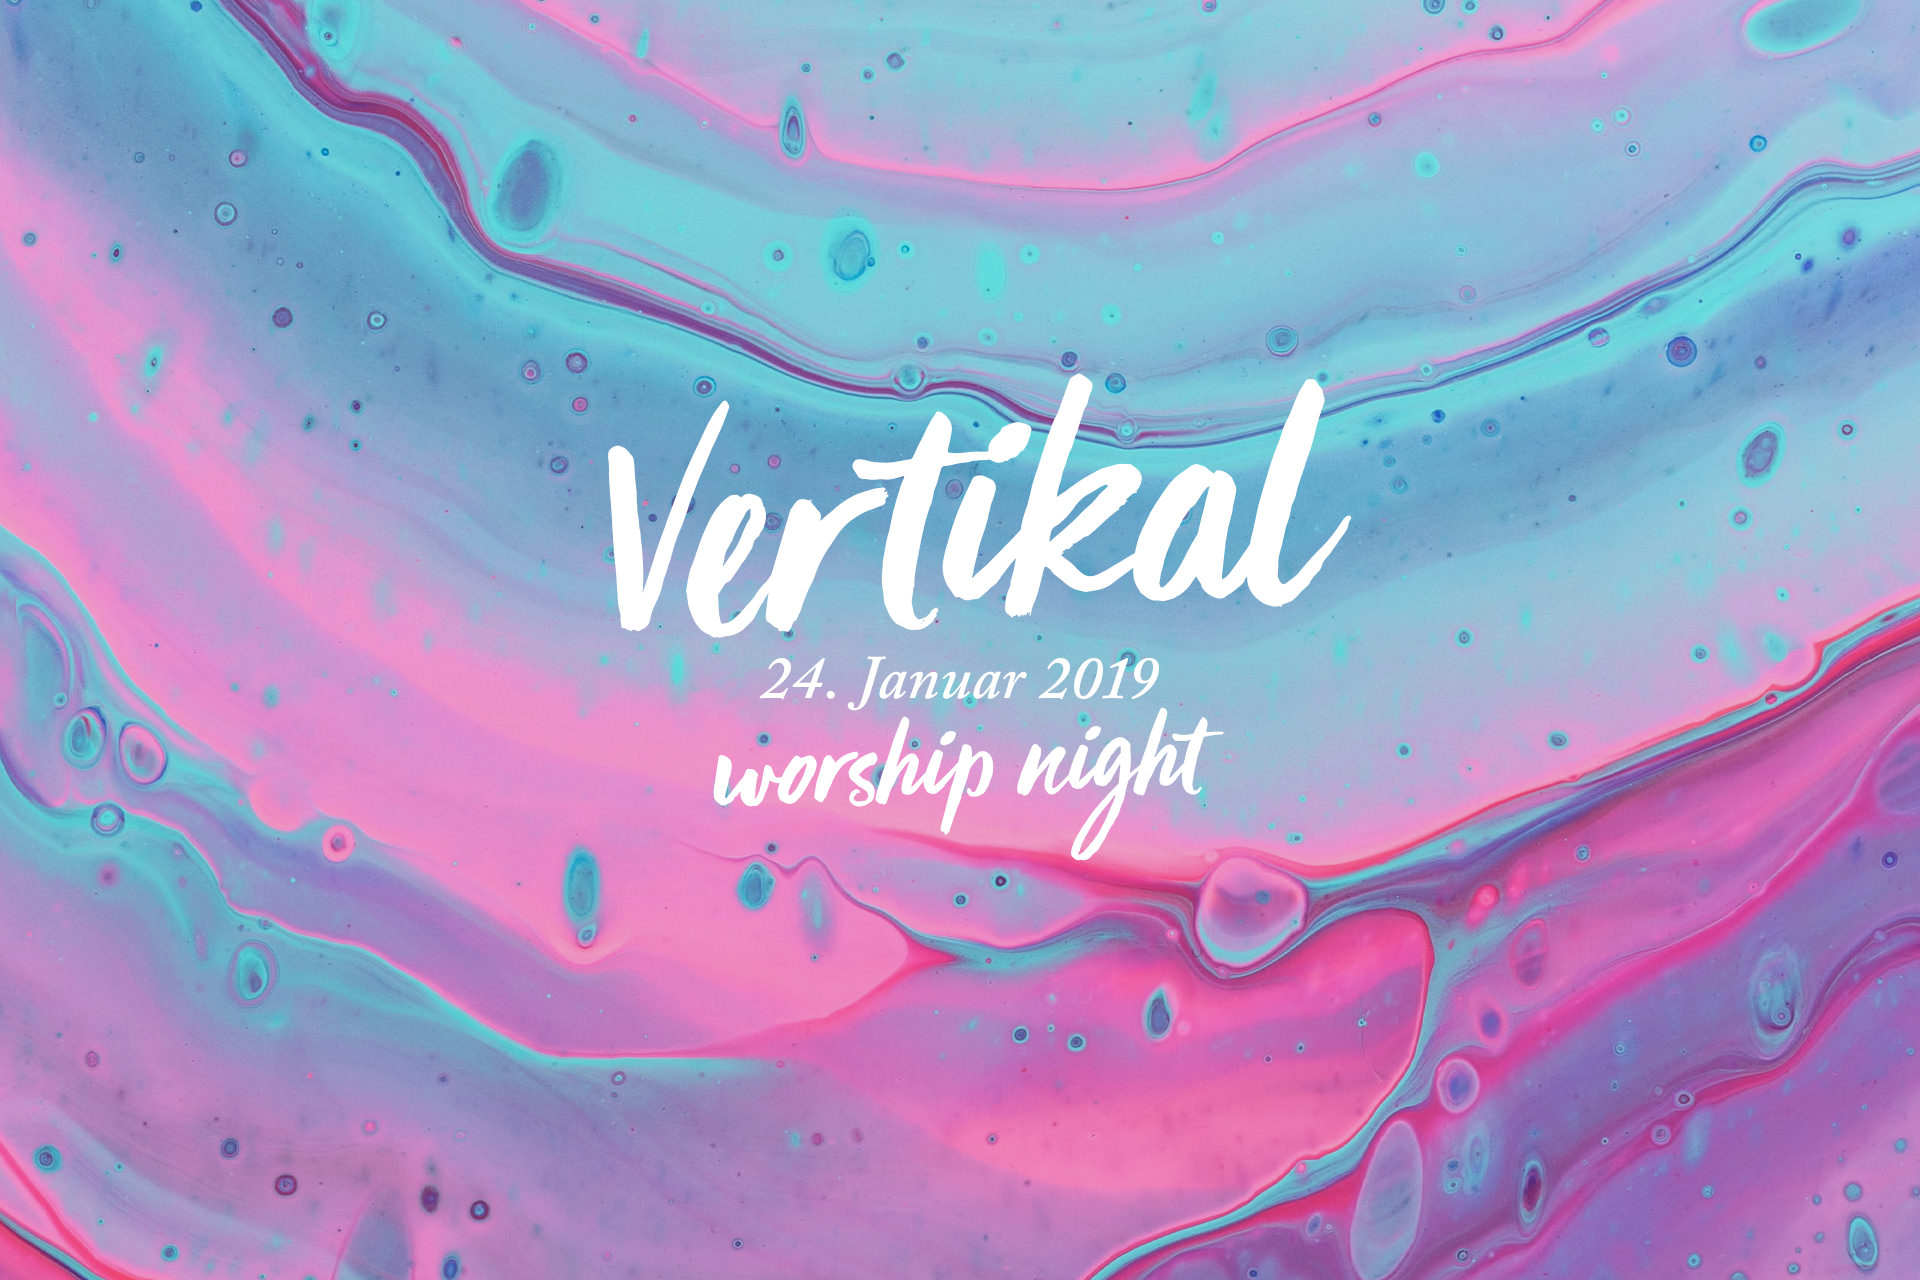 Vertikal Worship Night Bremen